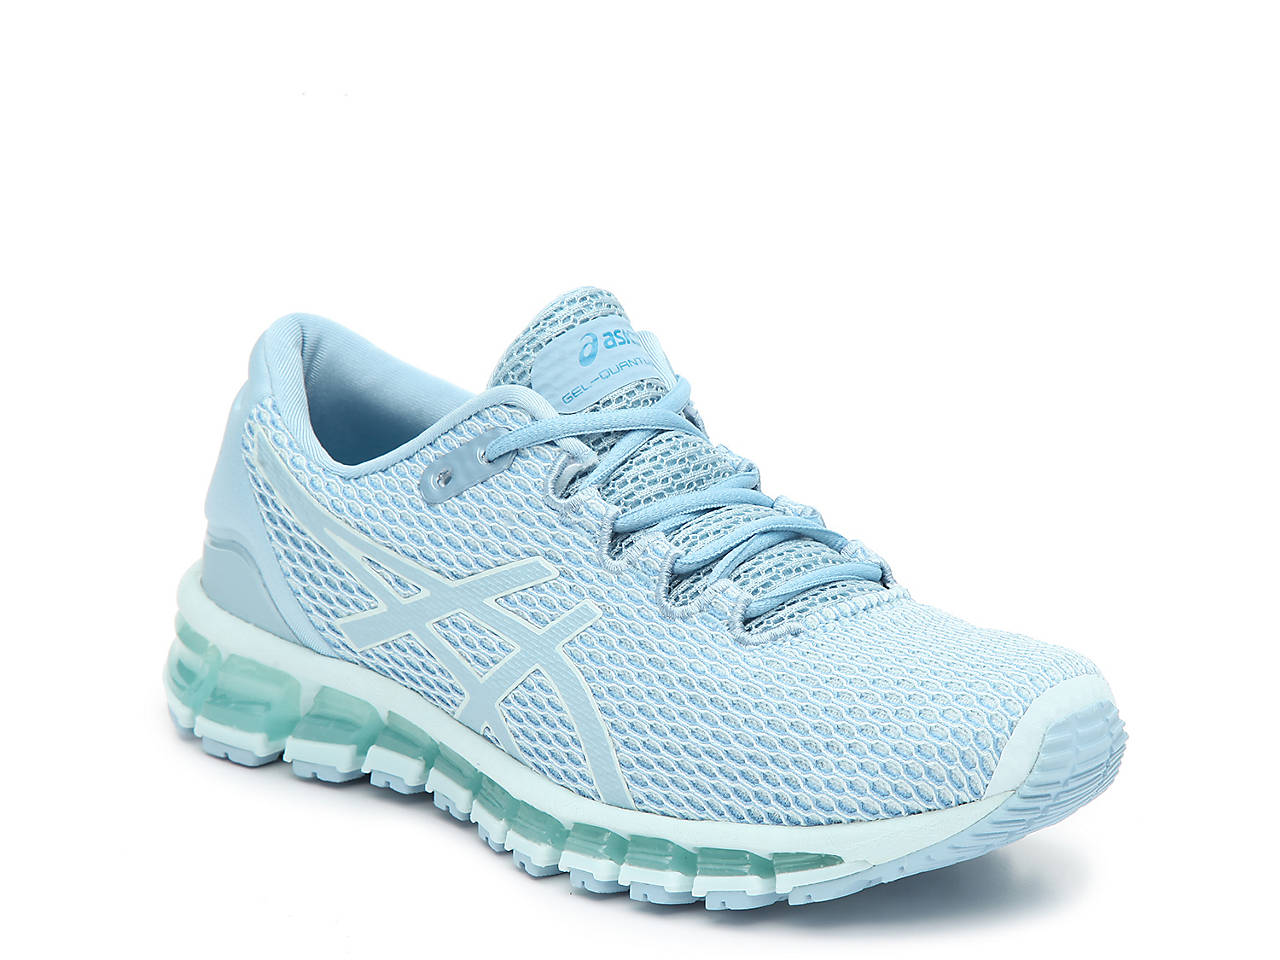 26290a365c364 ASICS GEL-Quantum 360 Shift MX Running Shoe - Women s Women s Shoes ...